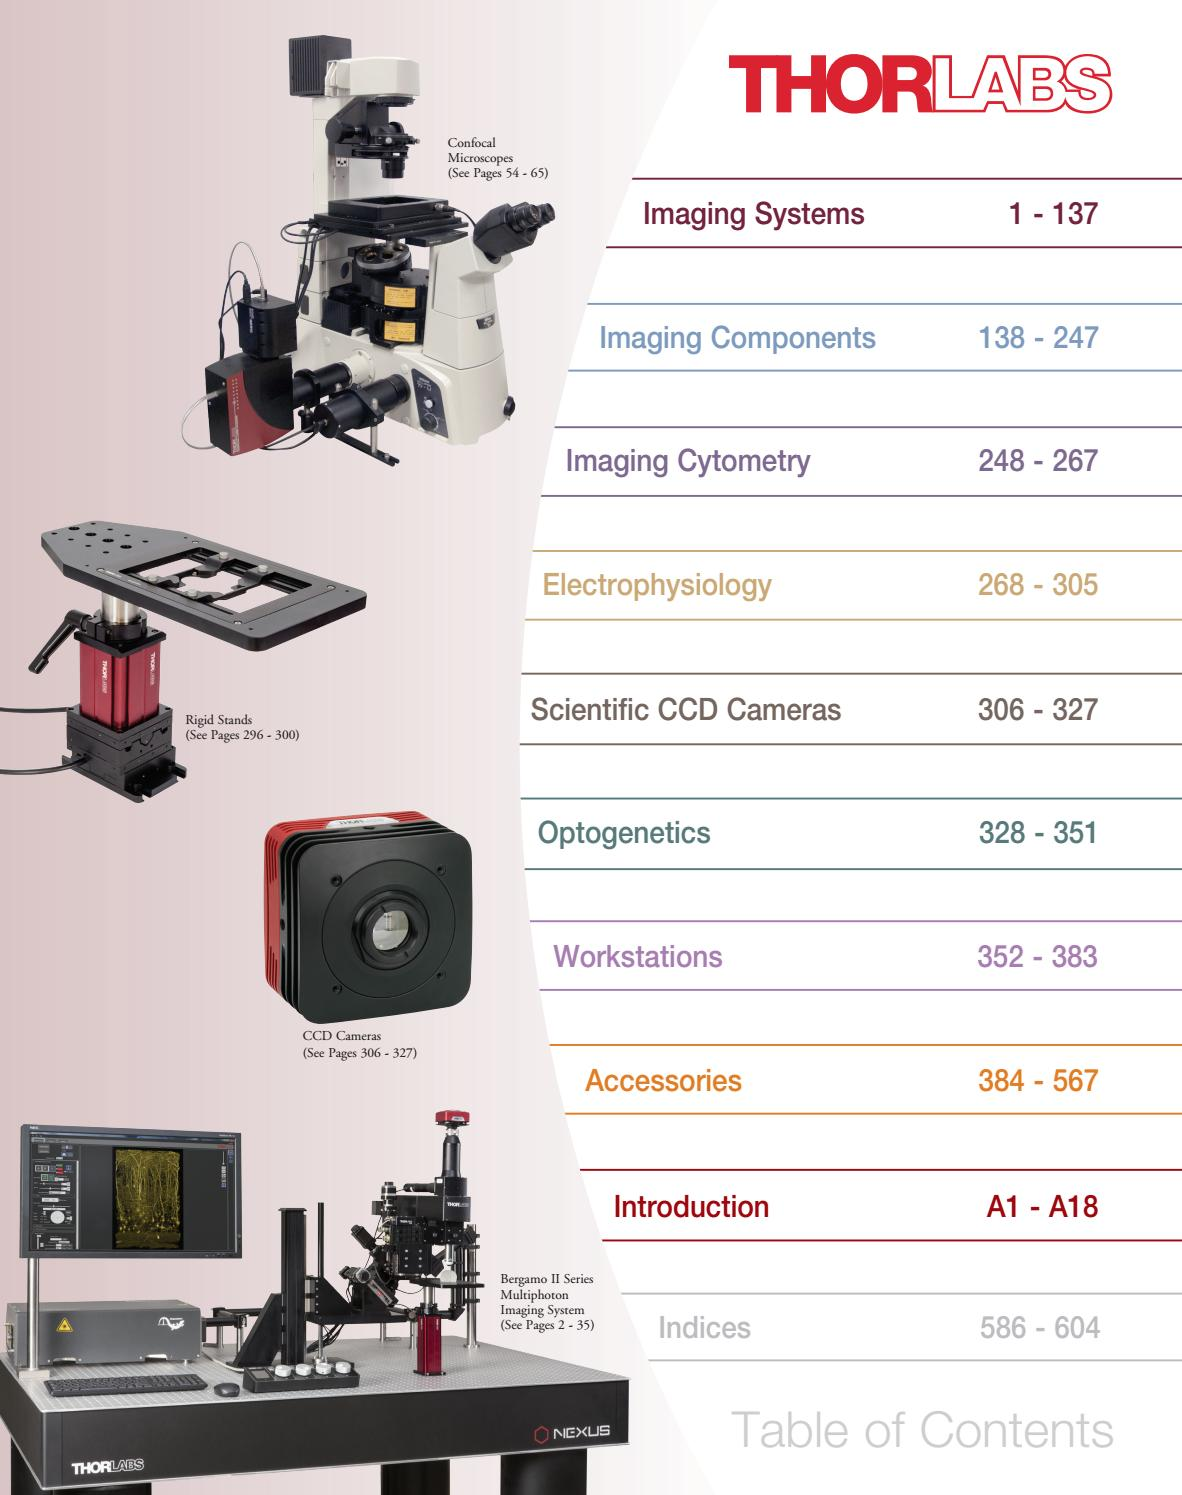 01 imaging systems pdf thorlabs by Axxis ecuador - issuu